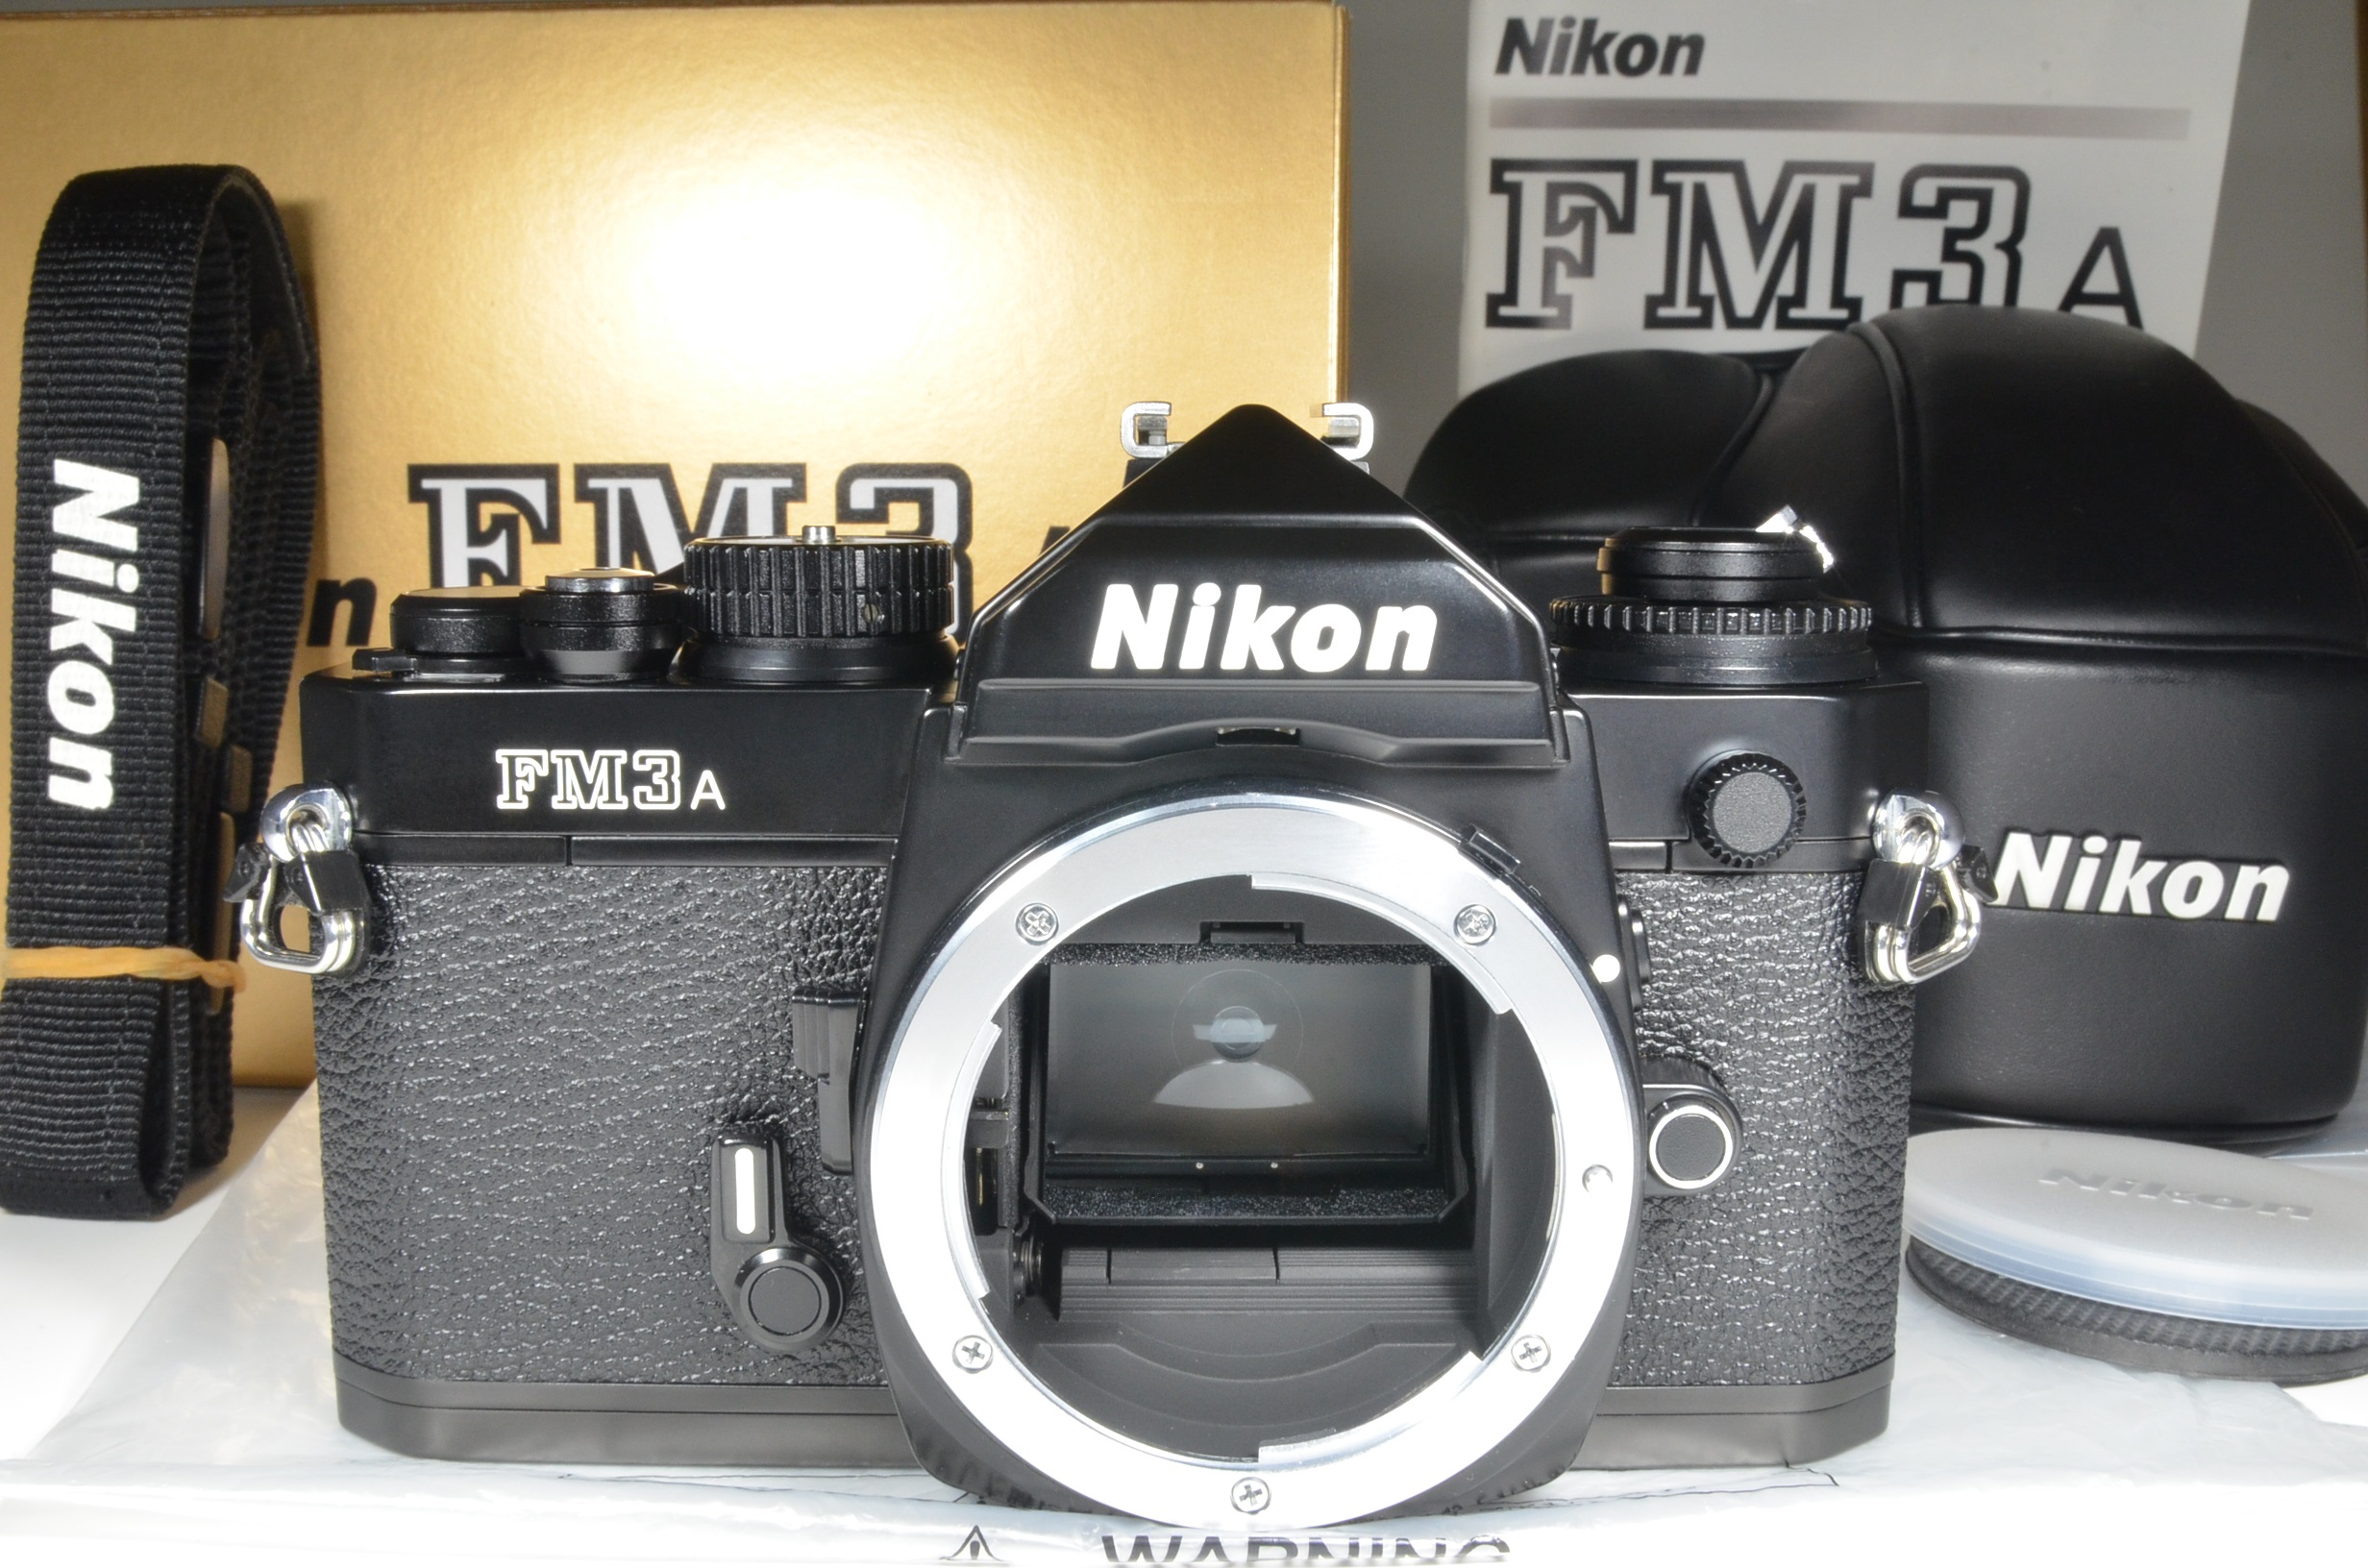 nikon fm3a 35mm film camera black cf-27